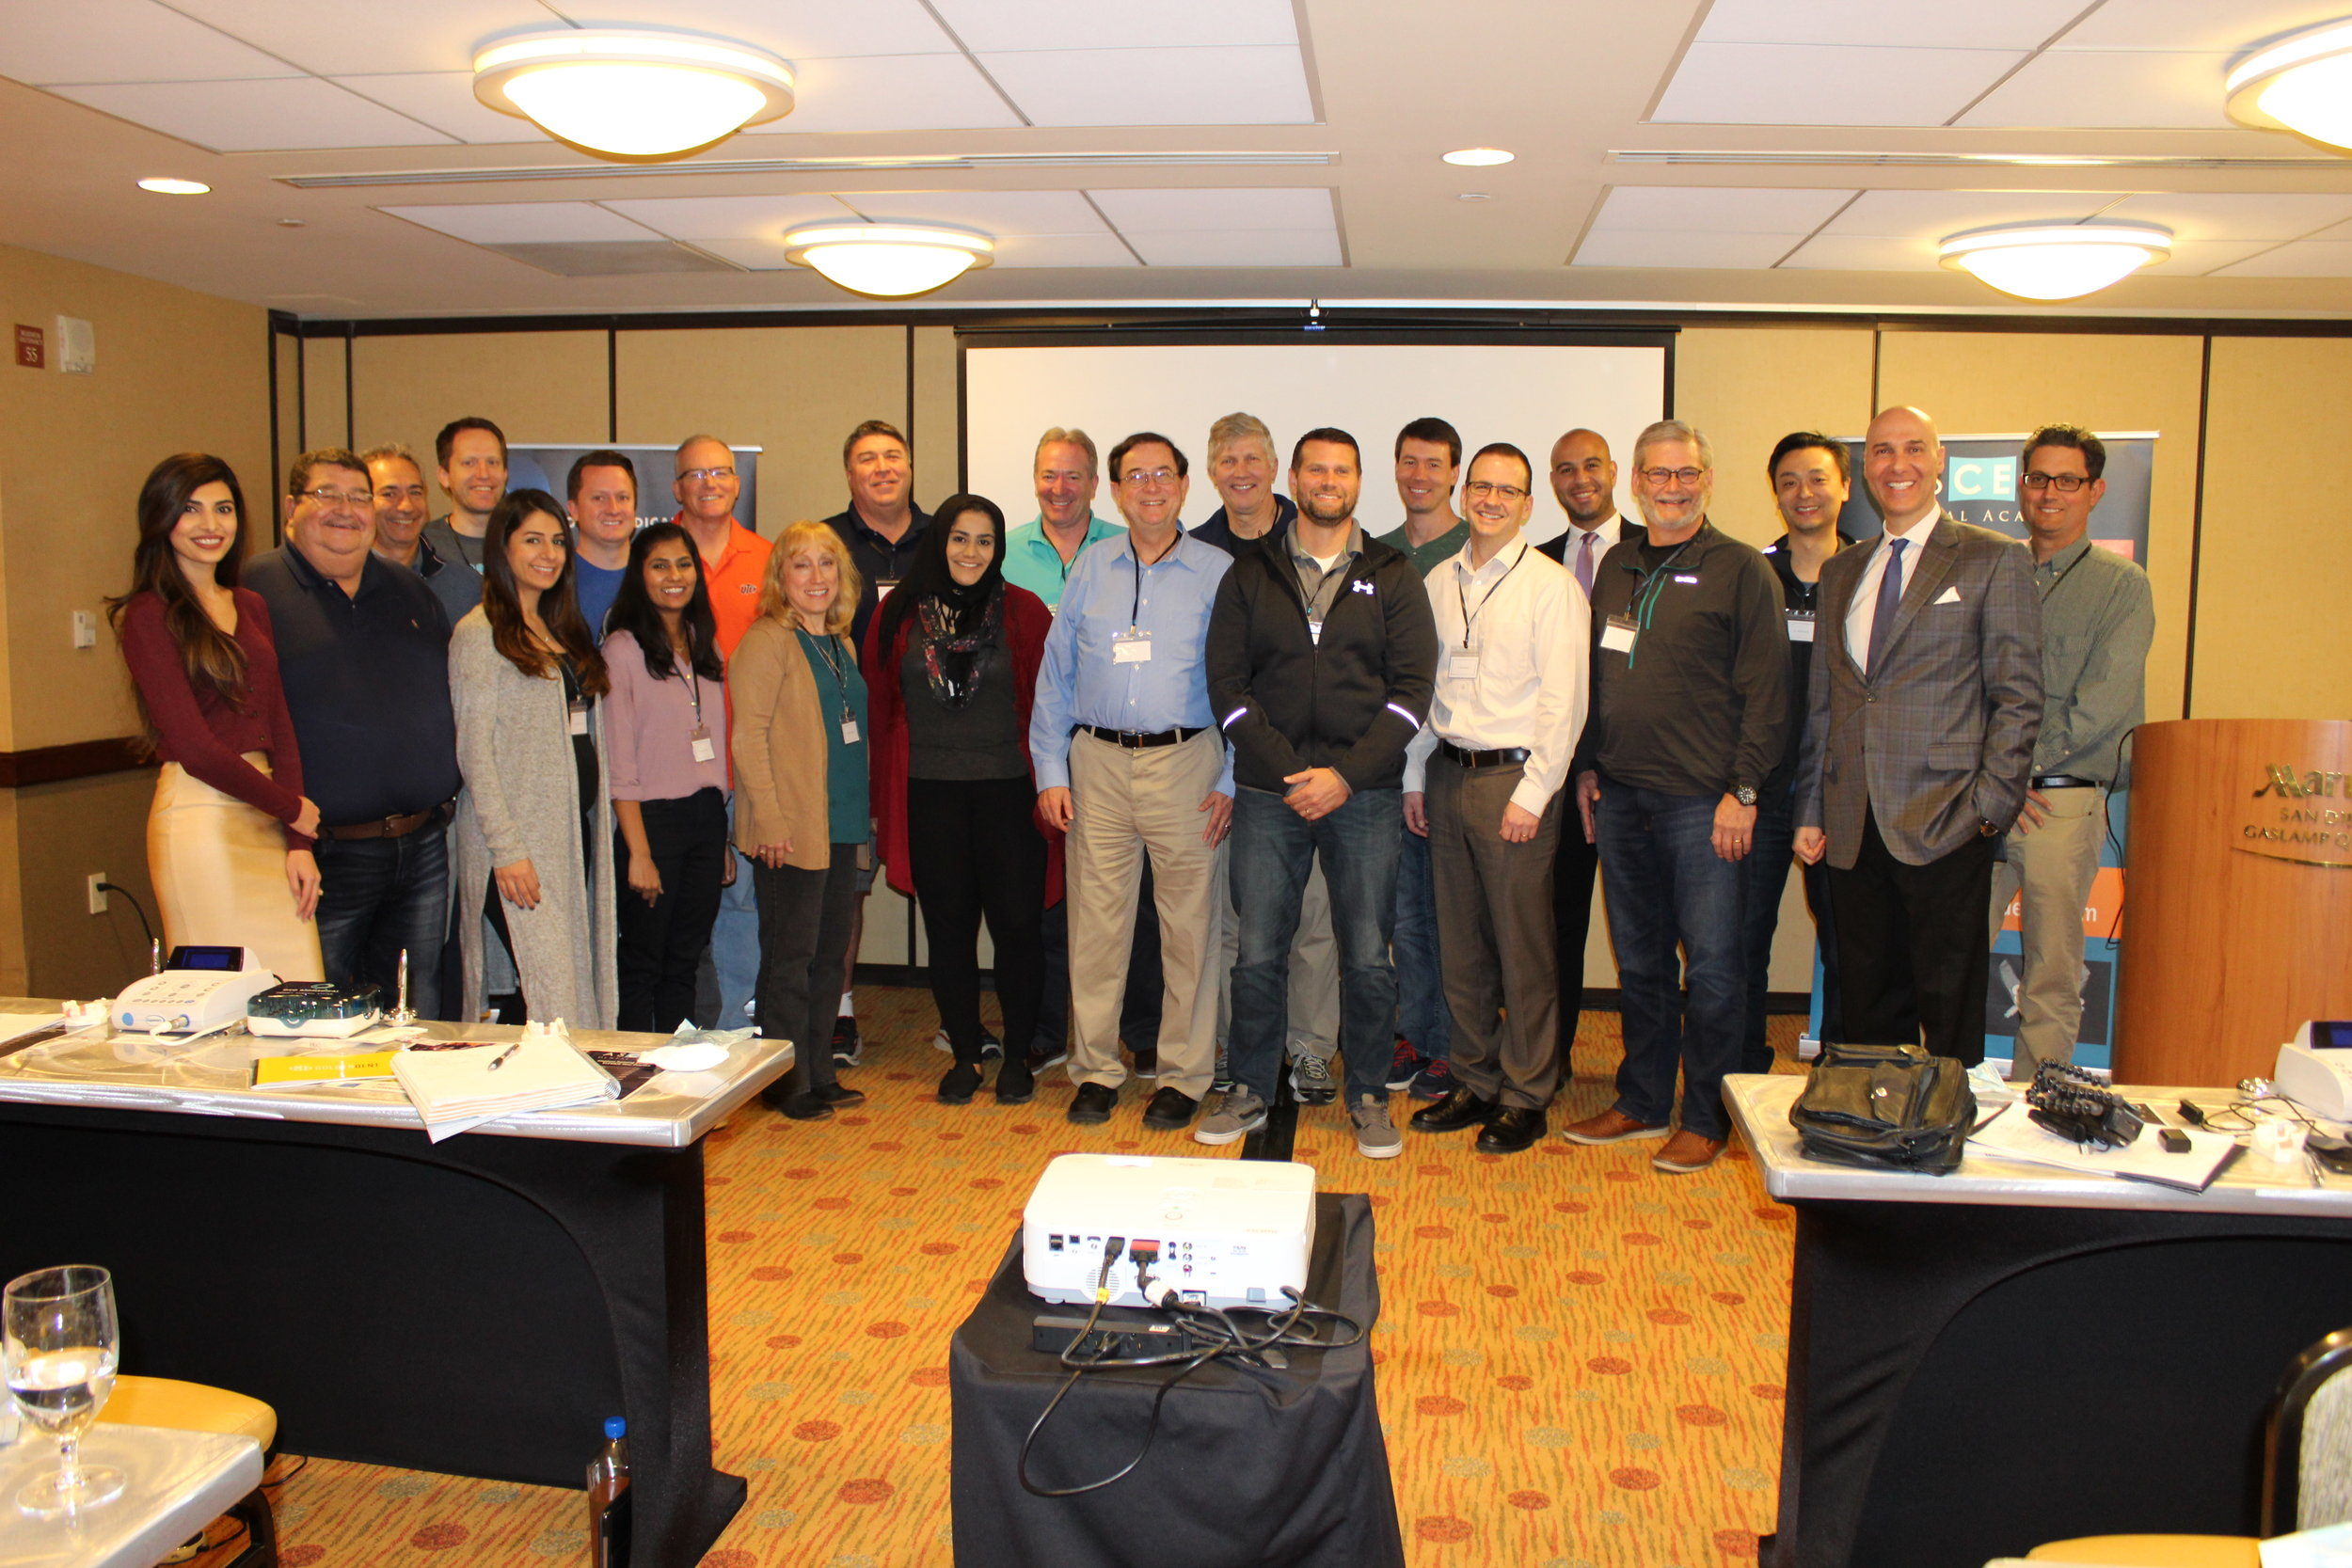 Module 1 & 2 Attendees in San Diego, CA, February 9-10, 2018